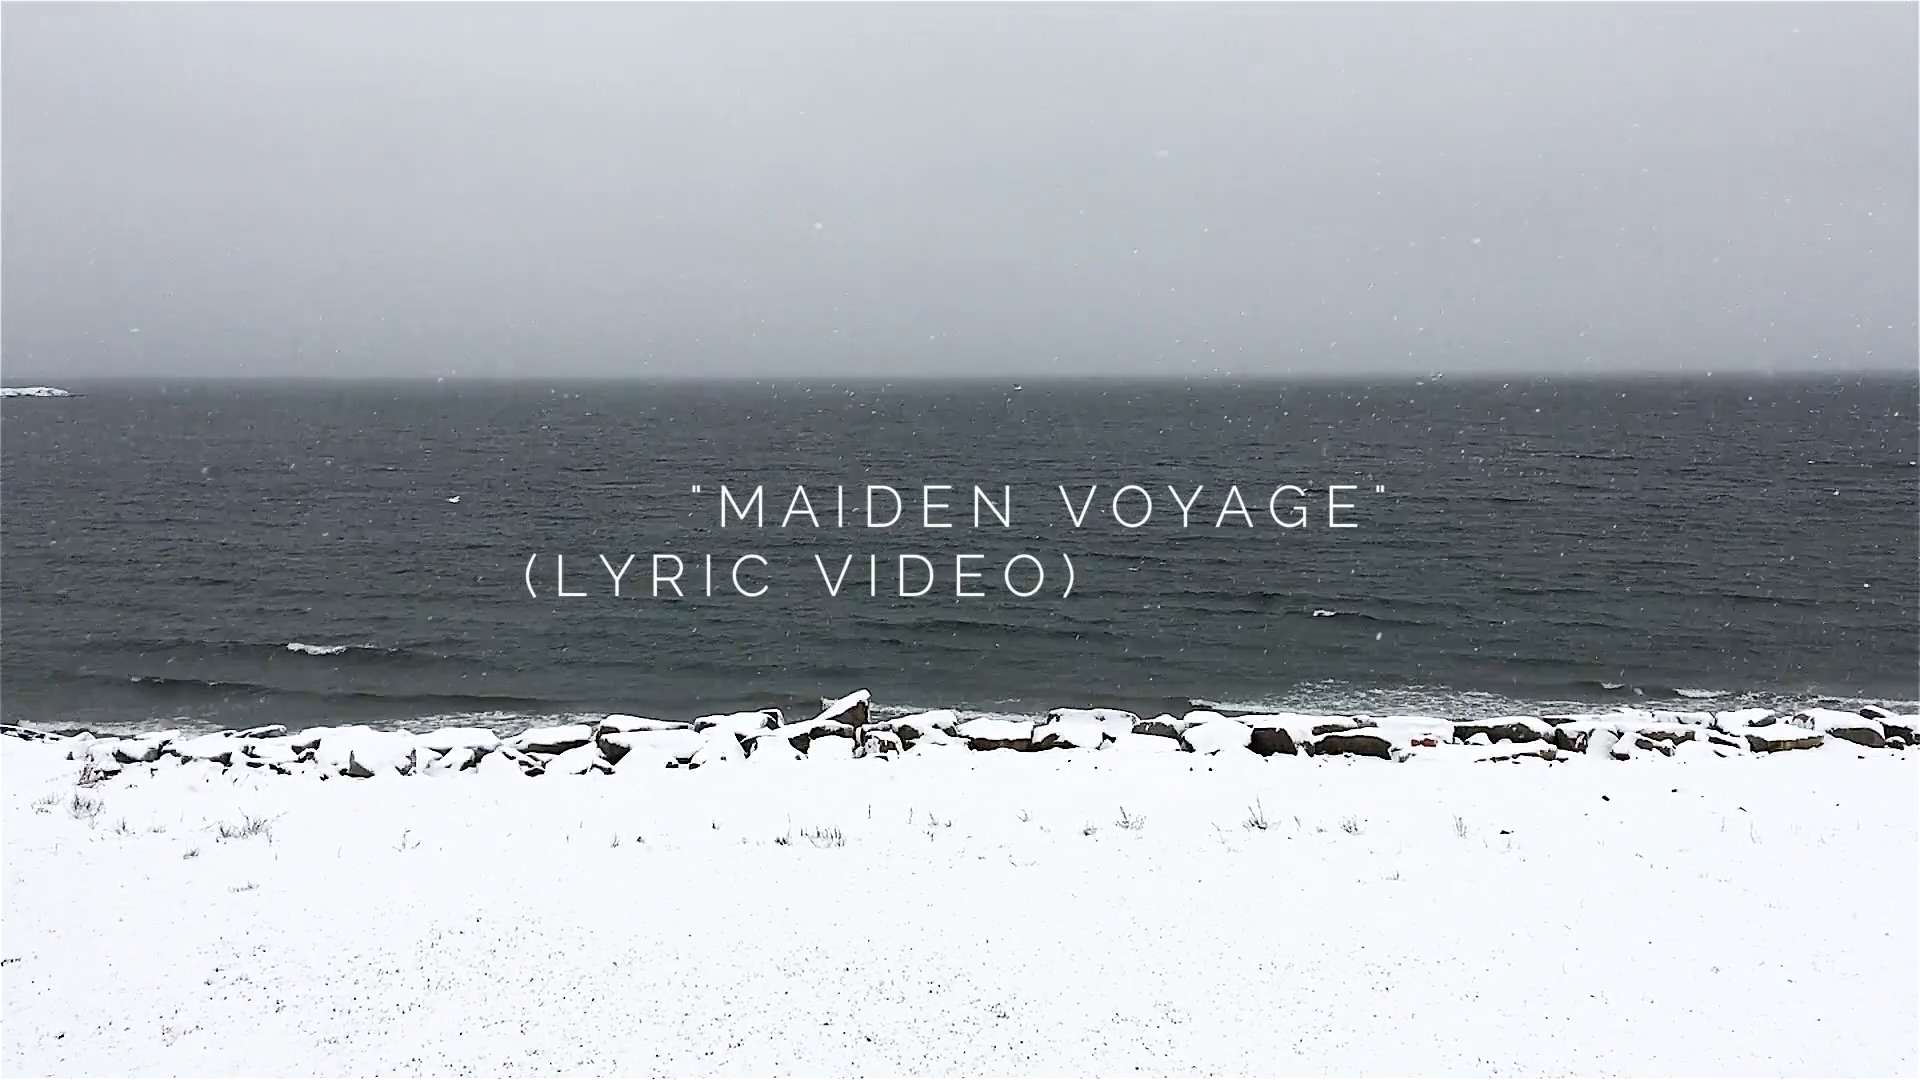 Maiden Voyage  (lyric video)